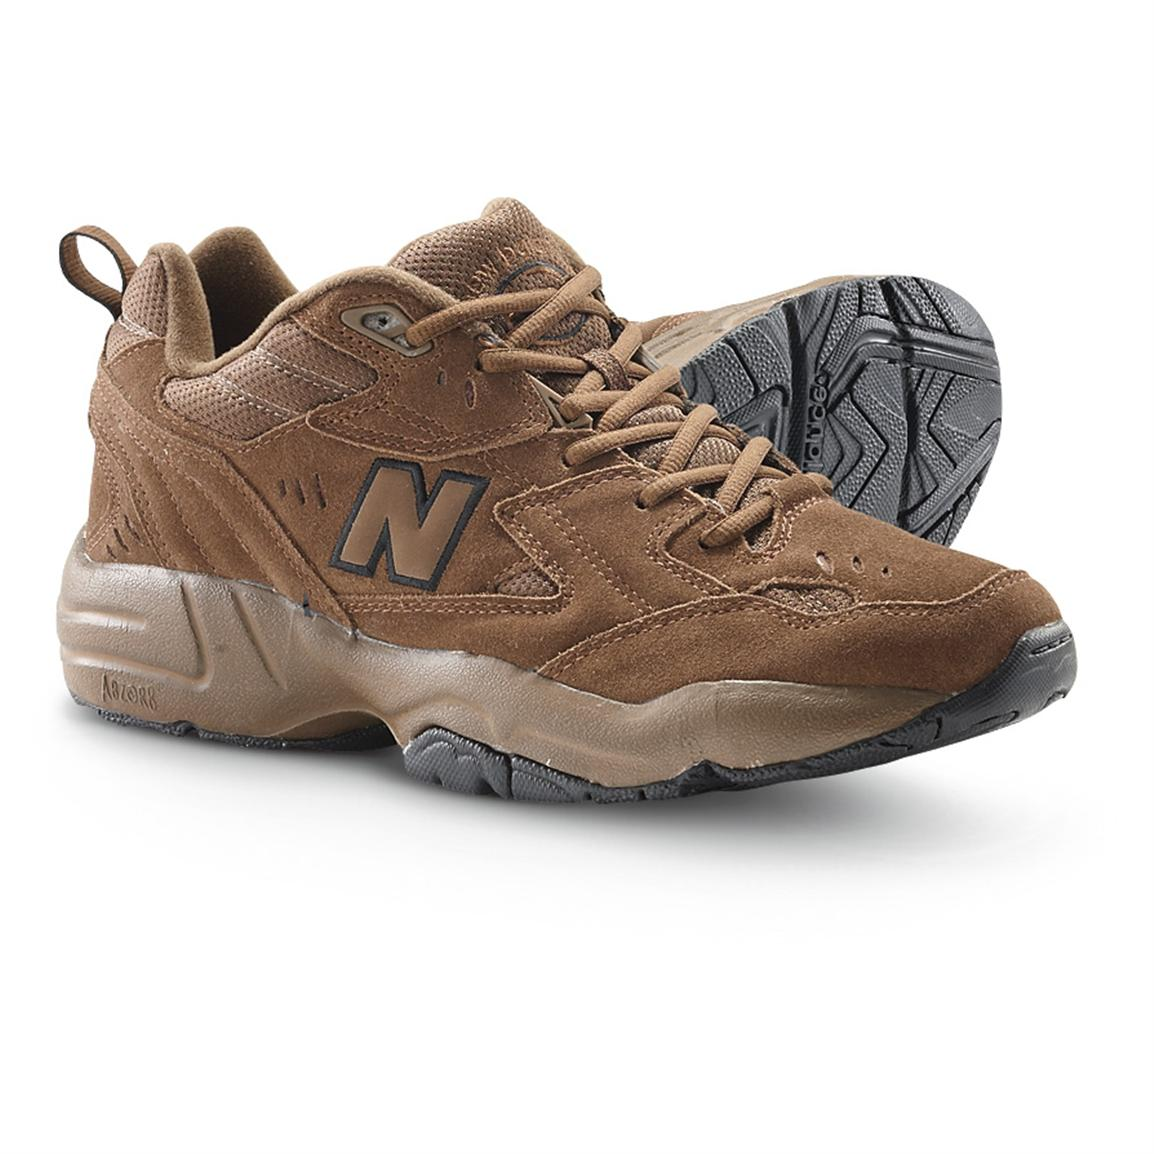 Conquistar vacío Elegante  Men's New Balance® 608 Cross Trainer Athletic Shoes, Dark Brown - 210215,  Running Shoes & Sneakers at Sportsman's Guide